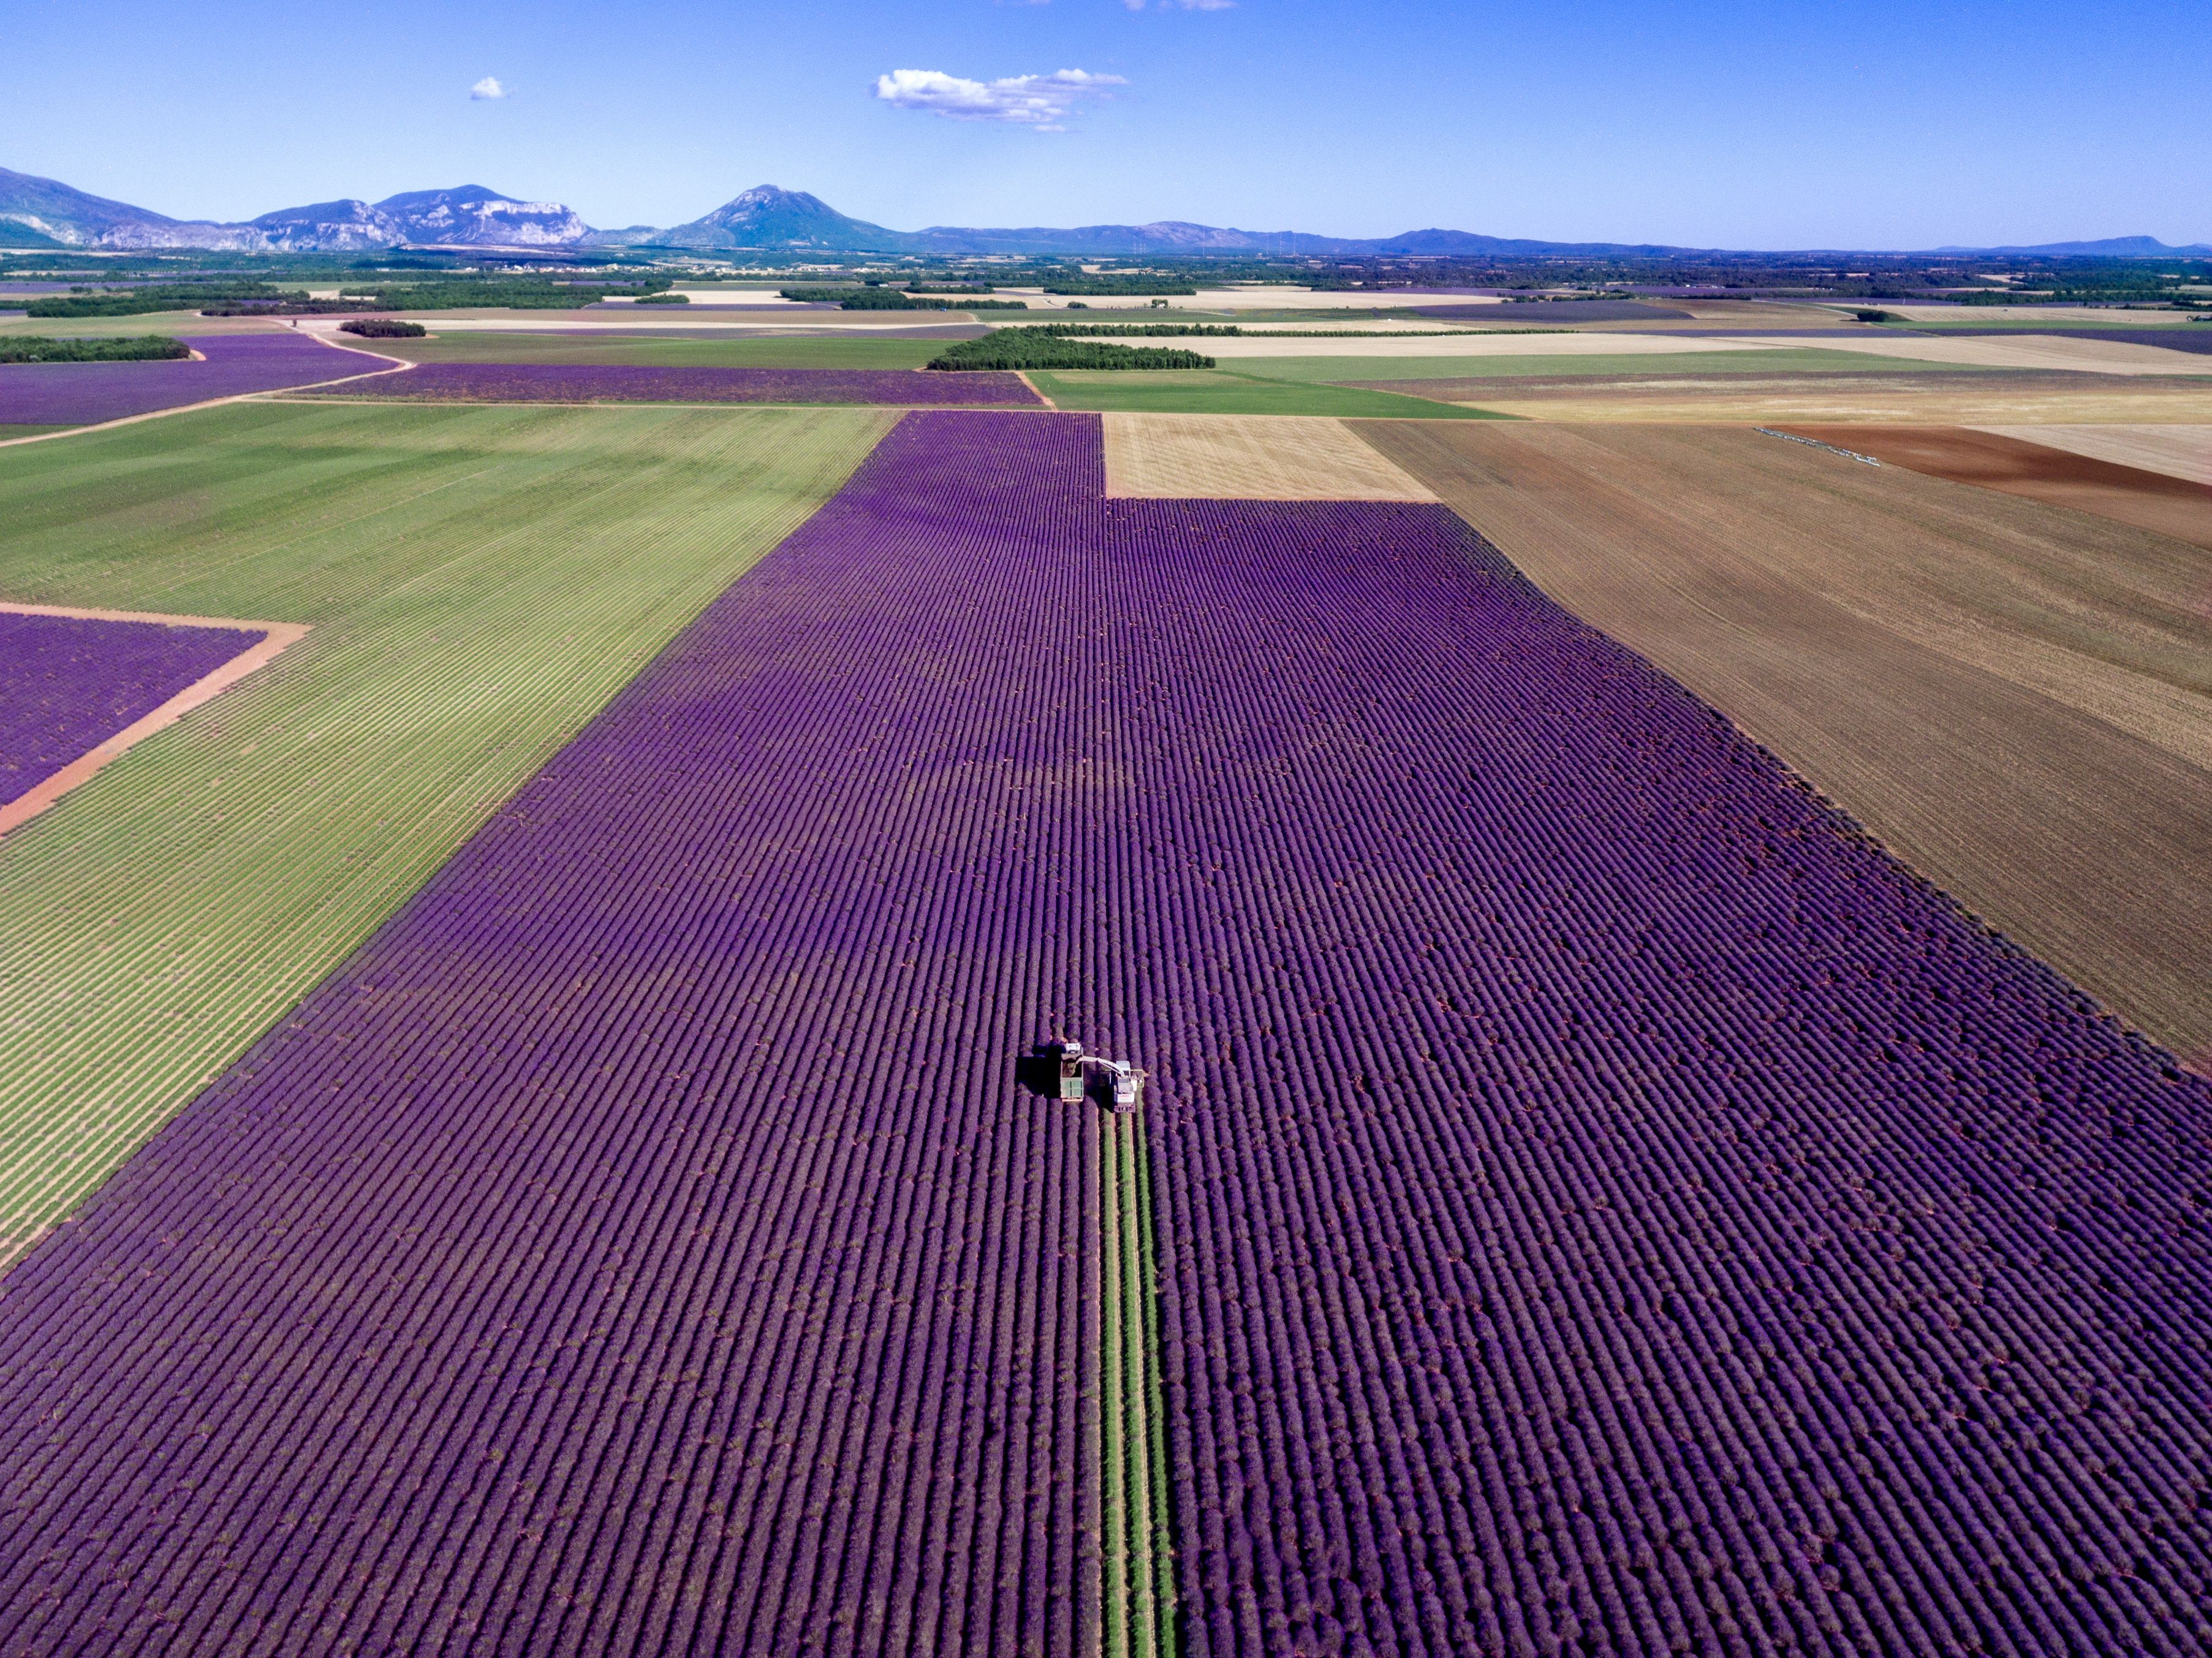 Slide 39 of 73: *Full story: http://www.rexfeatures.com/nanolink/smyh These striking photographs capture a farmer tending to an immaculate purple lavender field, leaving behind a single green trail. The pretty purple of the plants is overwhelming in this aerial shot taken over a lavender field renowned for being one of the most beautiful in France. A farmer collecting the plants uses a harvesting machine to travel in straight lines on the field, cutting all the purple branches and leaving behind the contrasting green. In these aerial shots of the field, there are around 20,000 lavender plants which all sit in perfect columns next to each other. Photographer Jerome Courtial captured these shots of the lavender field in St Julien D'asse, France, using his drone. Mr Courtial, 38, wanted to capture the fields differently as they are popular with photographers shooting from the ground - so he flew his drone and followed the harvest machine.